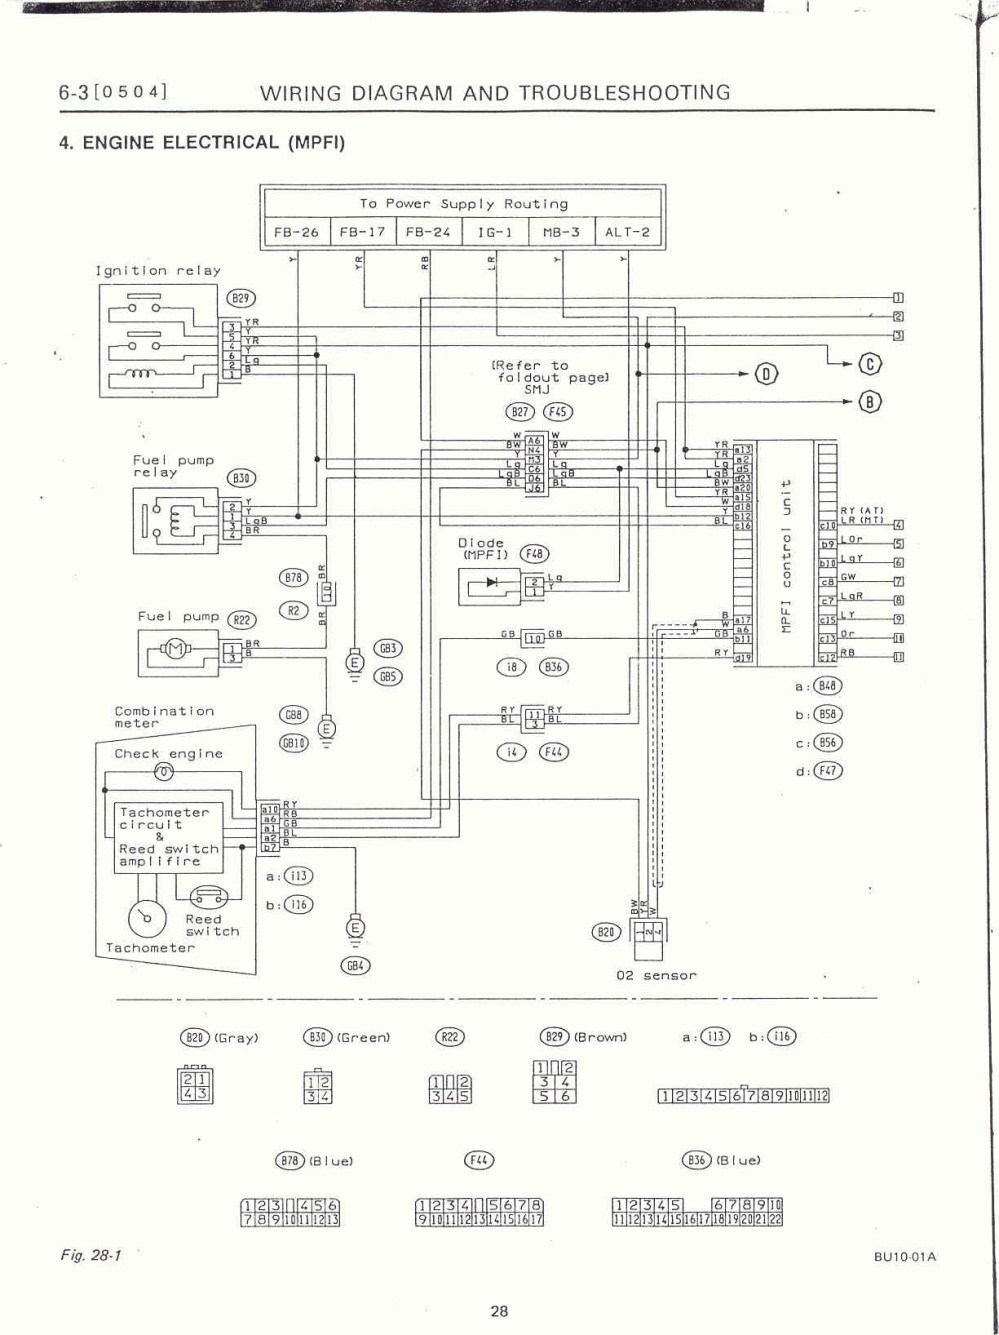 medium resolution of engine diagram 1996 subaru legacy outback best site 1996 subaru legacy headlight wiring diagram 2000 subaru